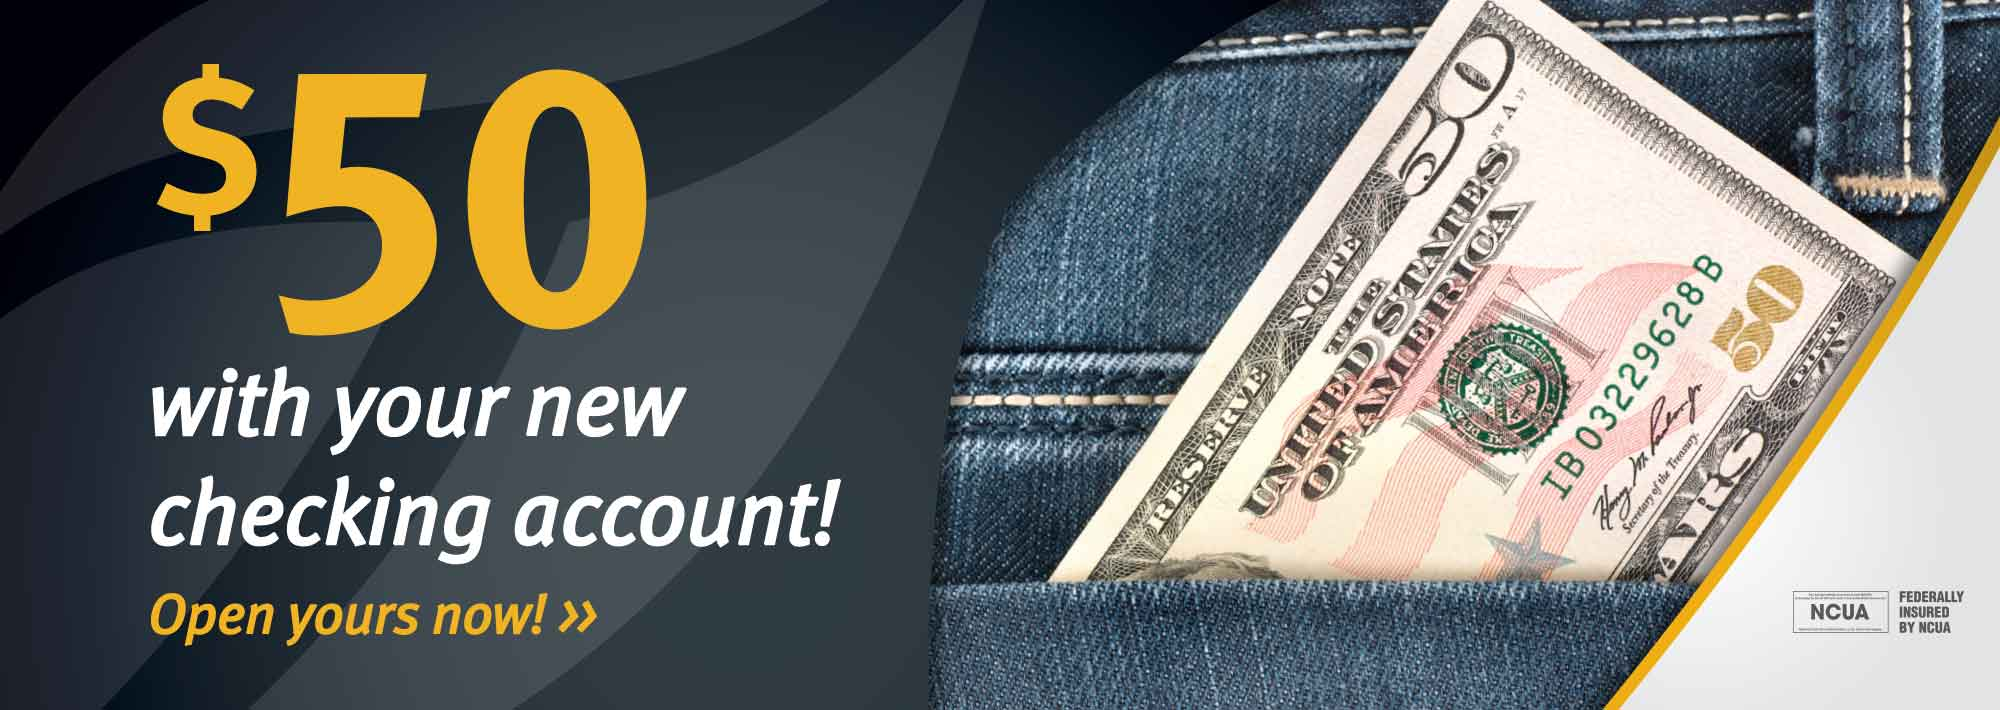 $50 with your new checking account! Open yours now!